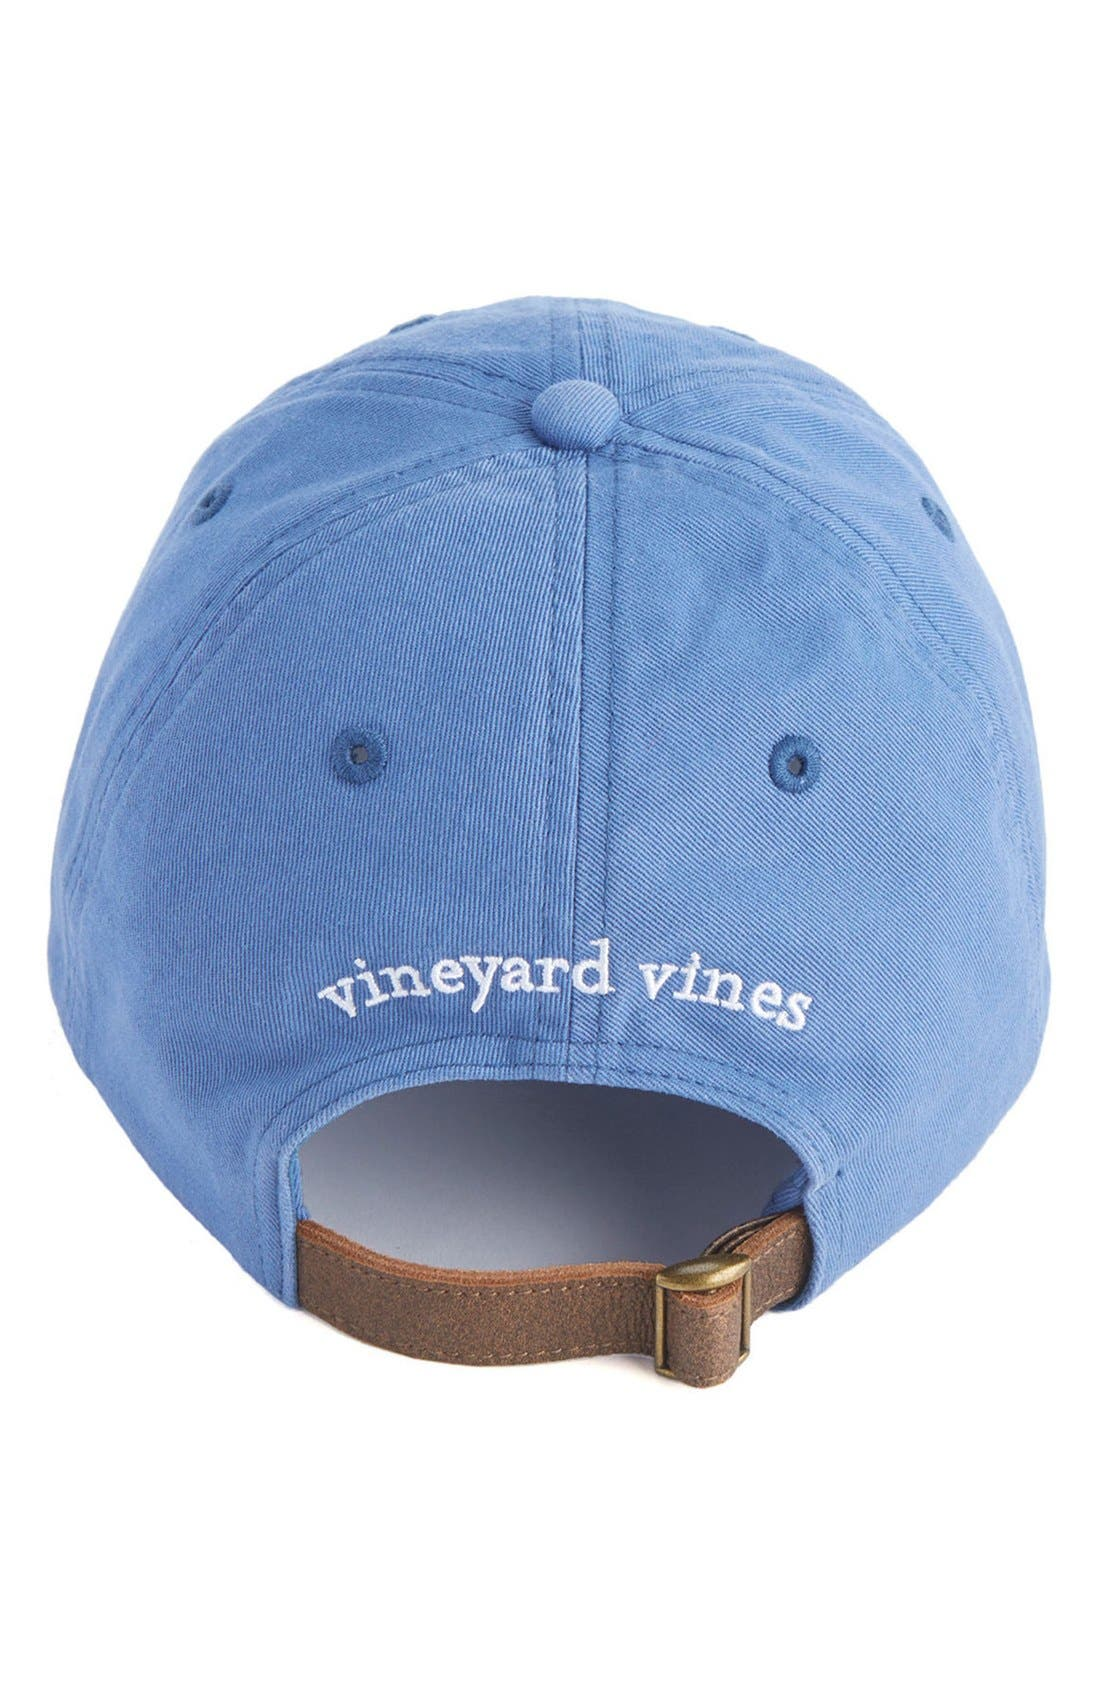 Alternate Image 2  - vineyard vines Flag Whale Logo Baseball Cap